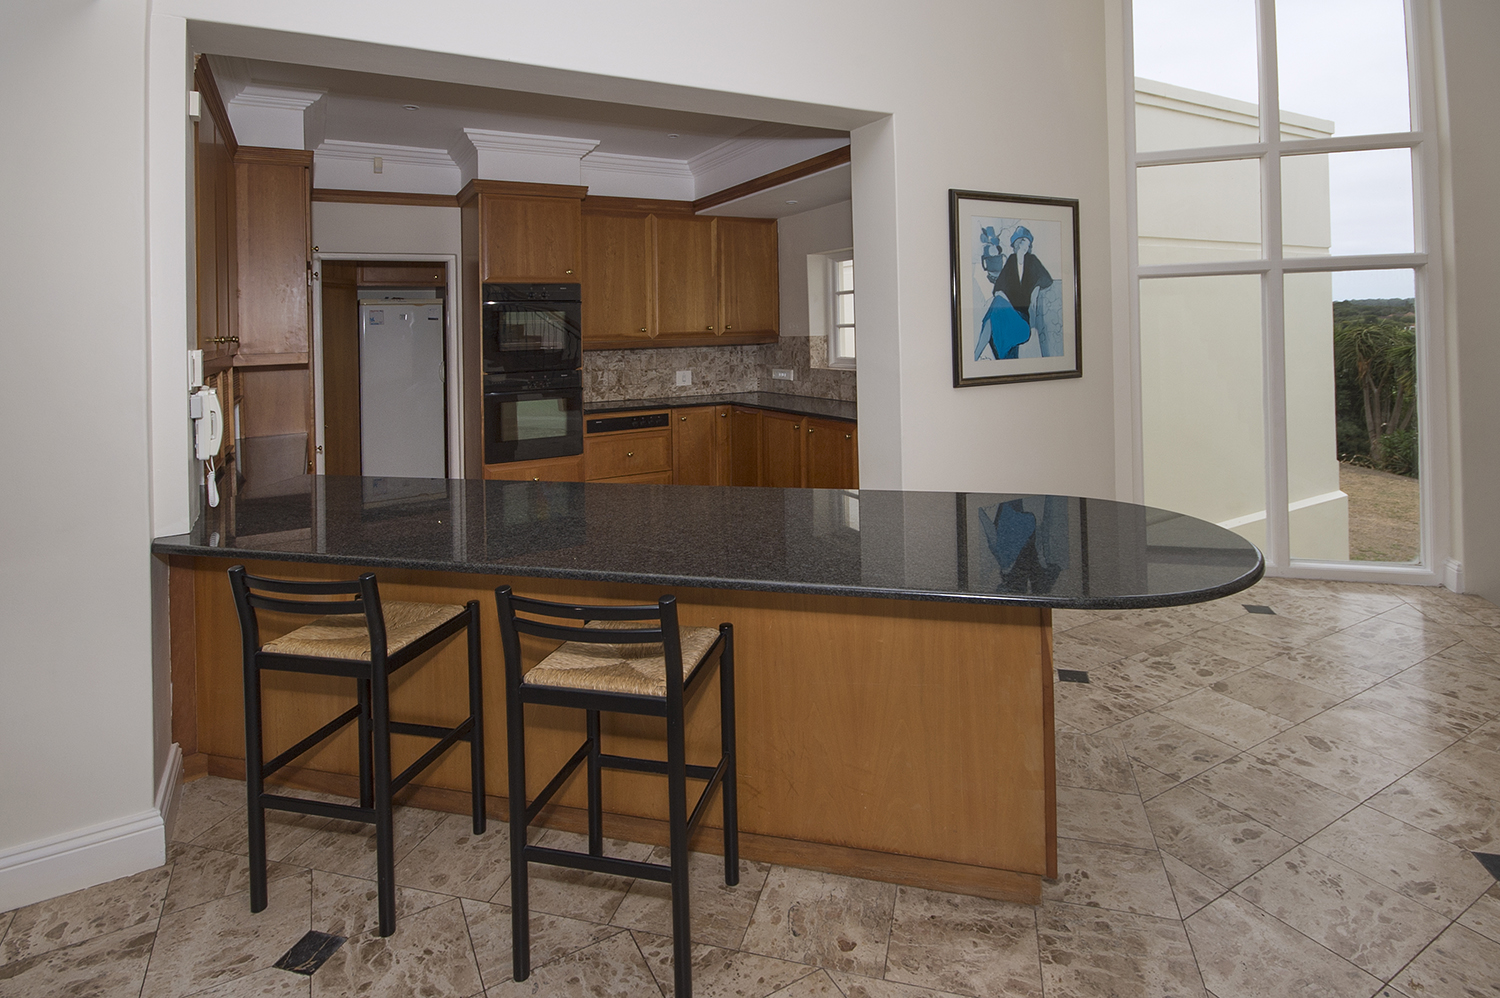 4 Bedroom House for sale in Mill Park ENT0024309 : photo#7